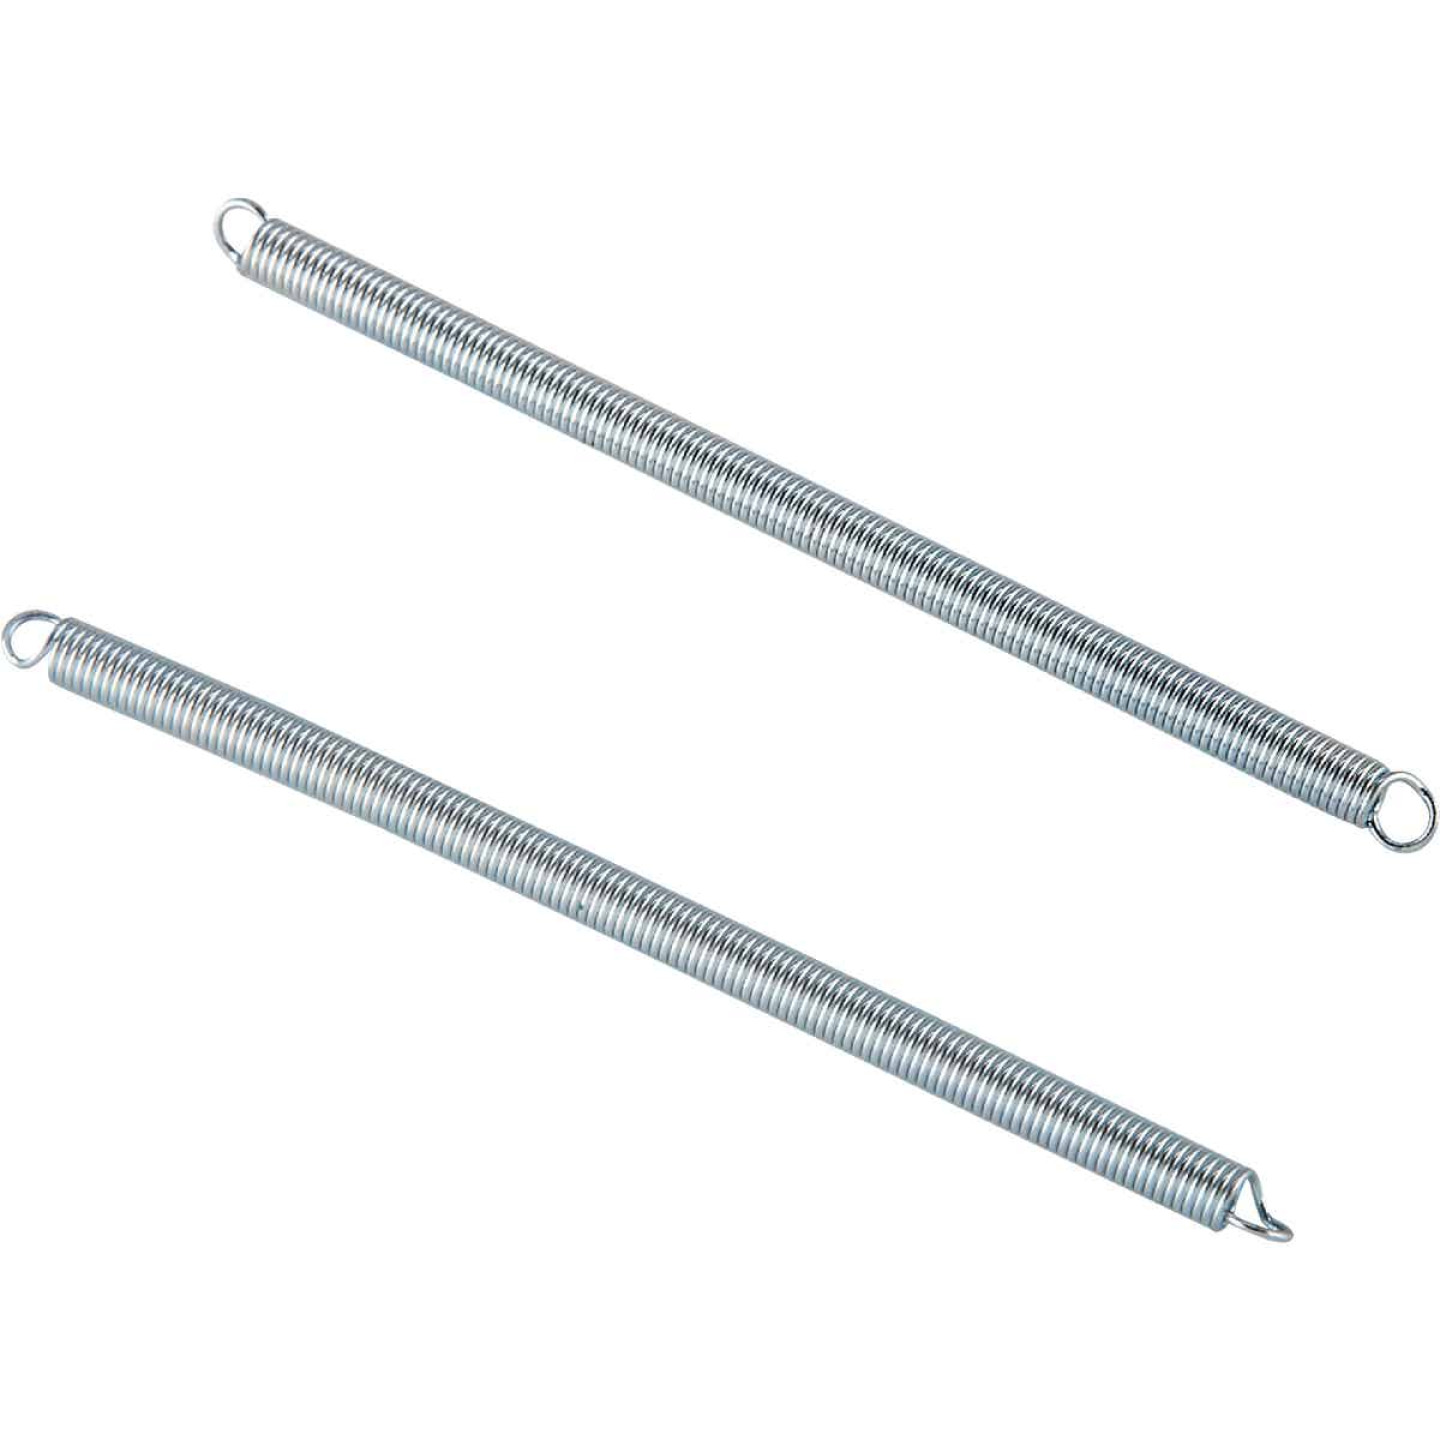 Century Spring 1-7/8 In. x 9/32 In. Extension Spring (2 Count) Image 1